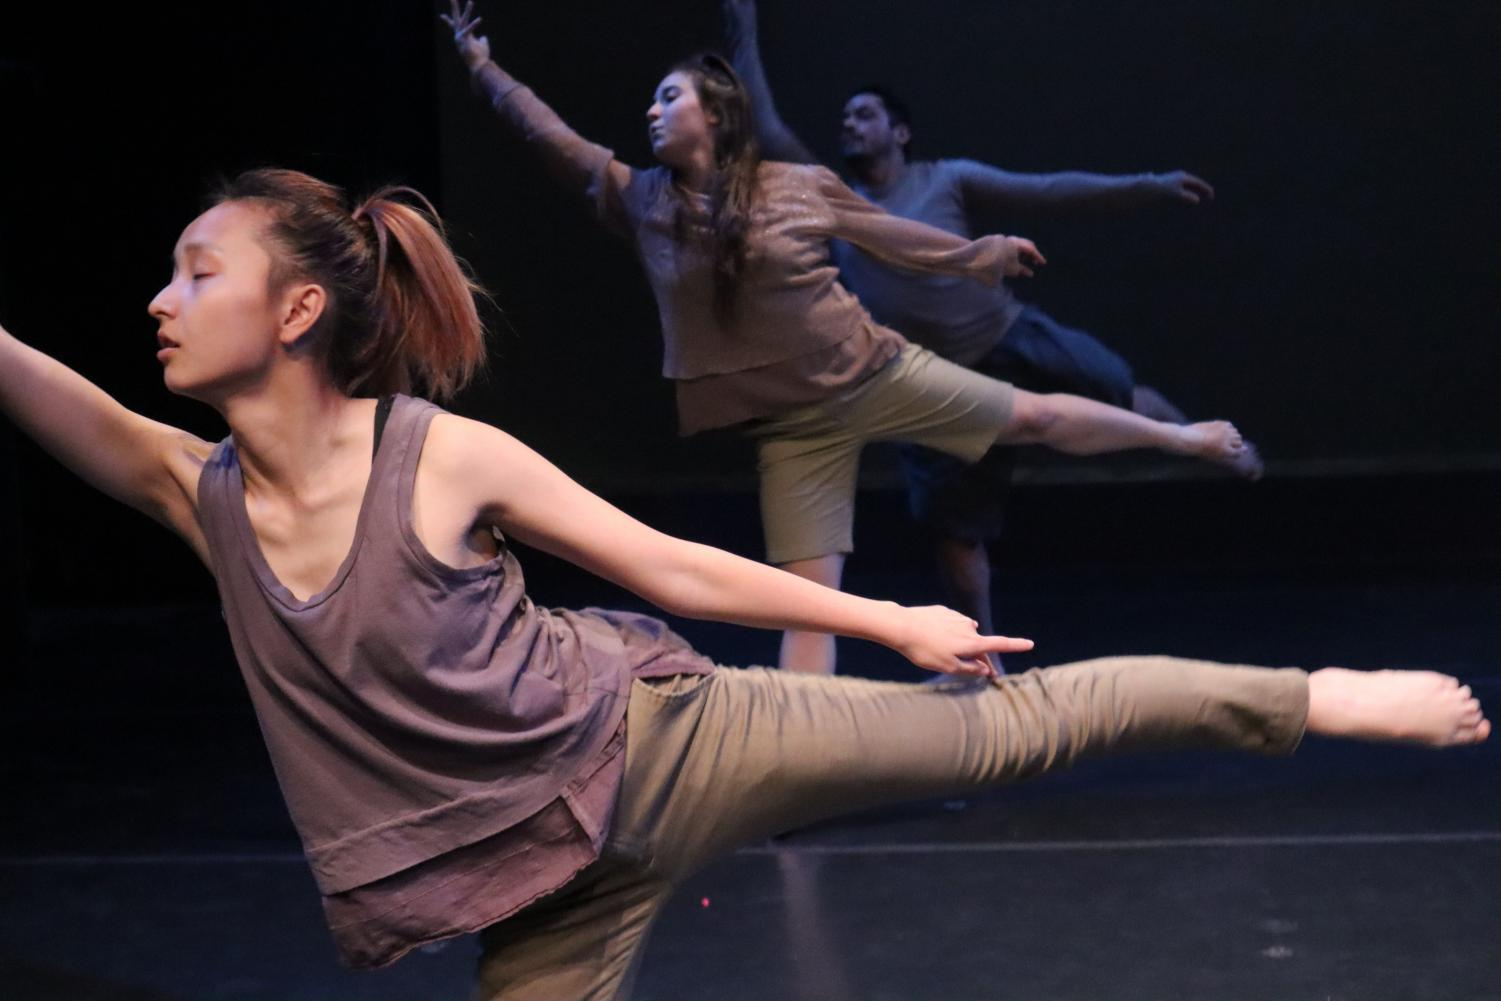 Sac State dancers Joyce Vang, Juliane Rose Cooper and Louis Moreno rehearse for their upcoming shows. Sac State's University Dance Company will be performing at Shasta Hall from Dec. 5 to Dec. 7.